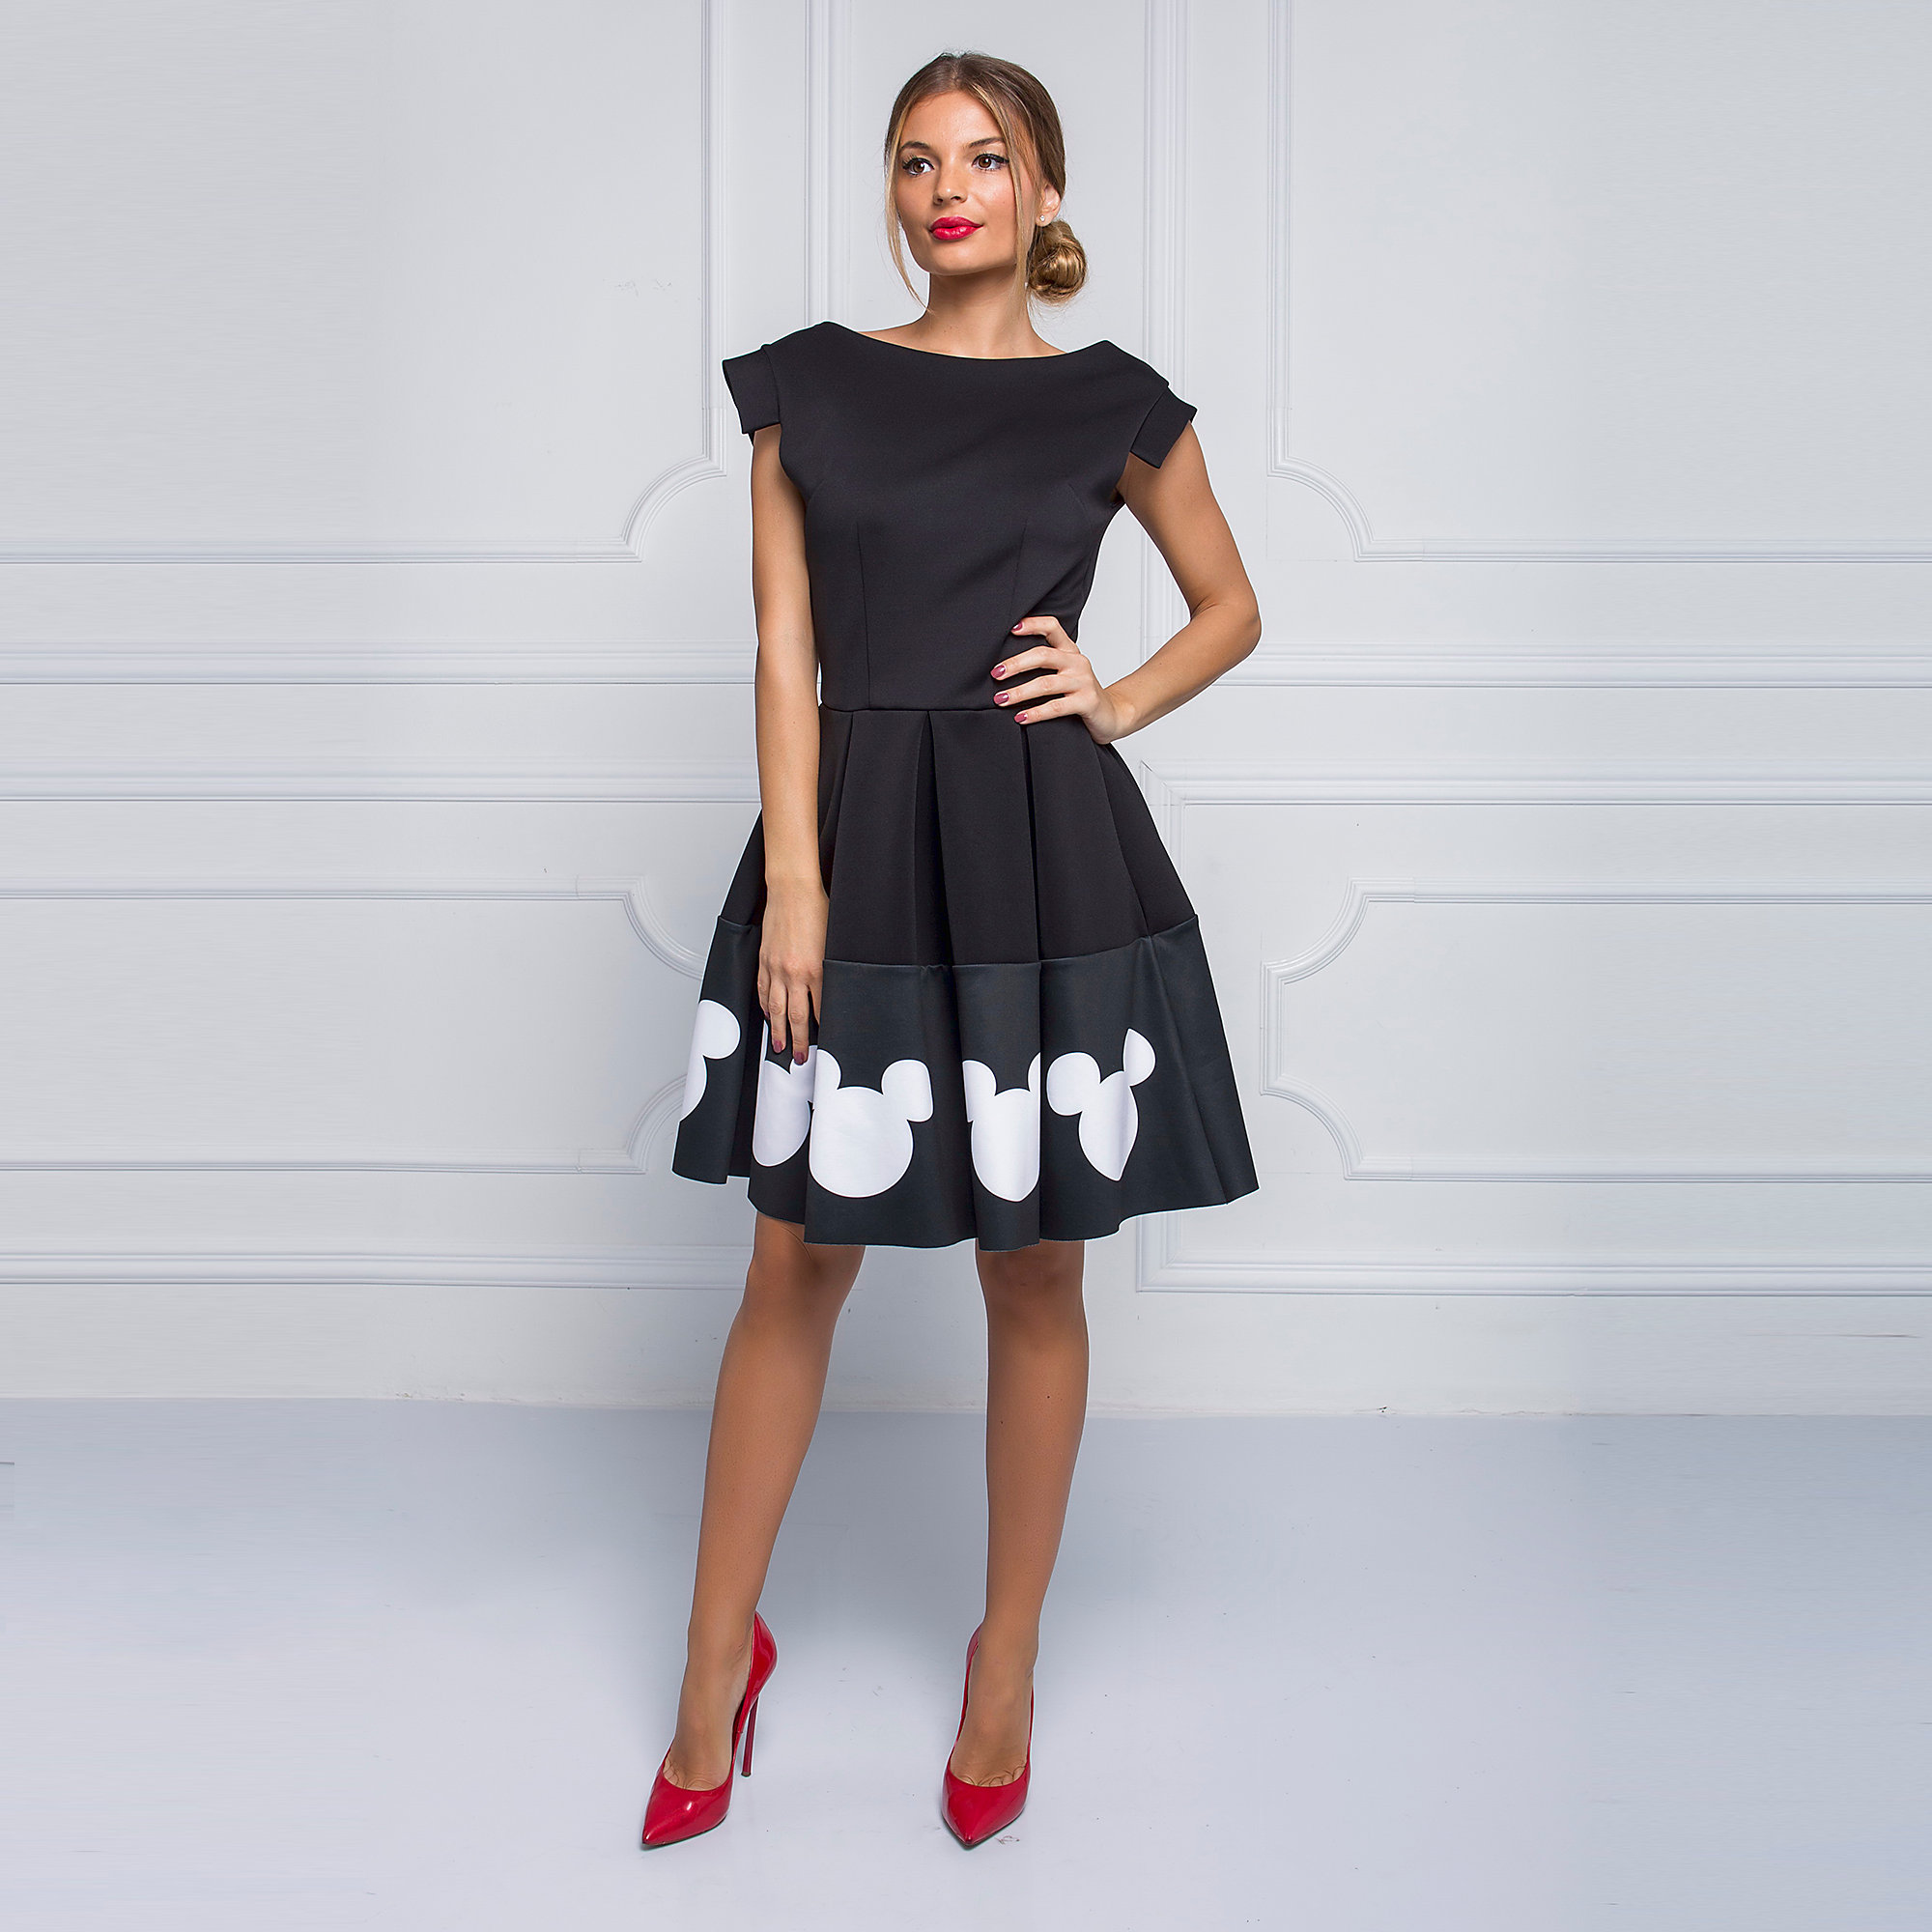 Product Image of Mickey Mouse Icon Dress for Women by Sugarbird # 2  sc 1 st  shopDisney & Mickey Mouse Icon Dress for Women by Sugarbird | shopDisney